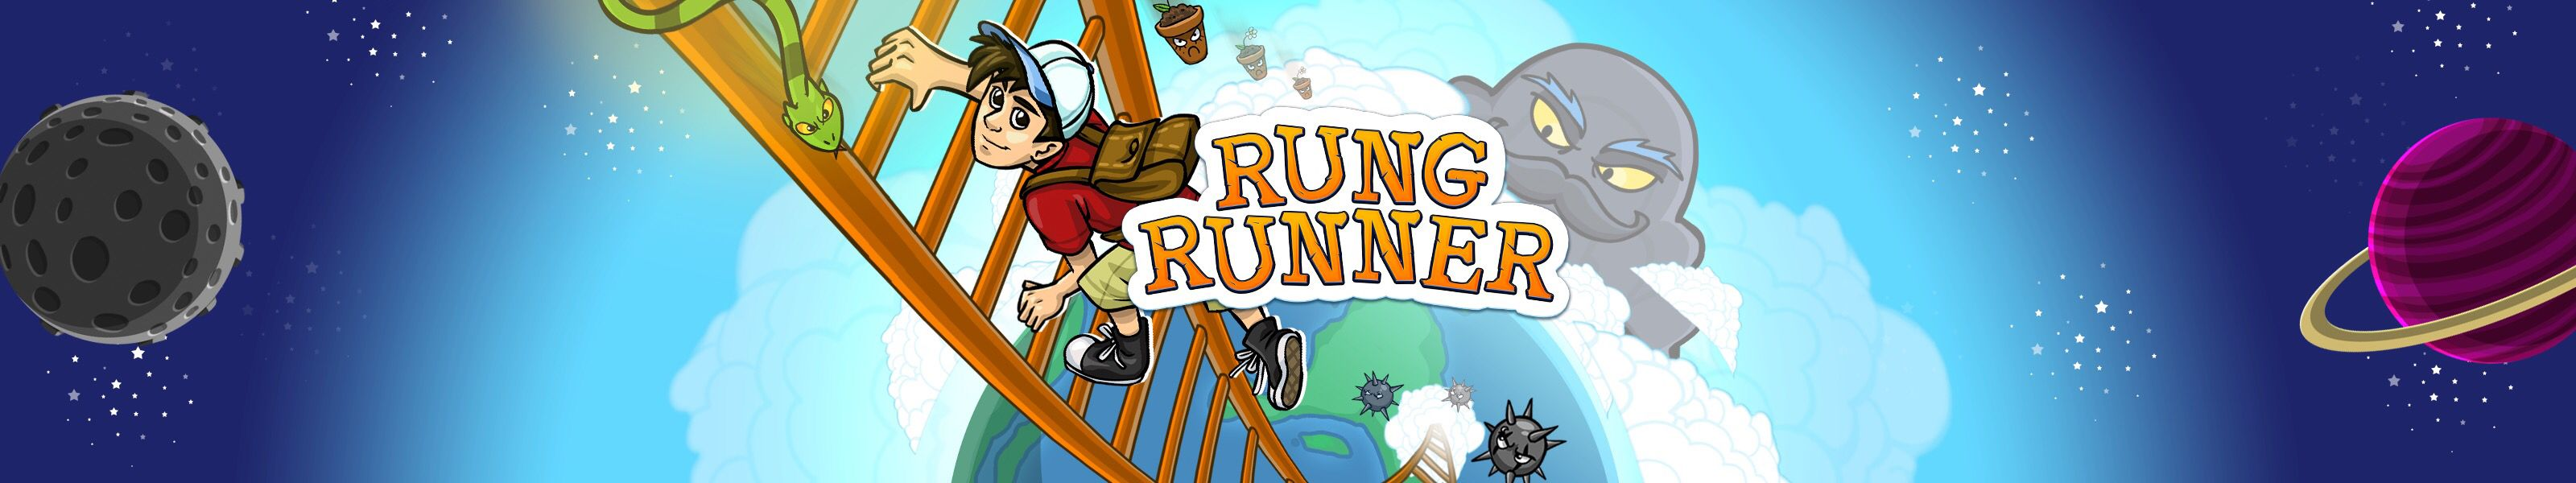 Super addicting fun is her in rung runner for iOS